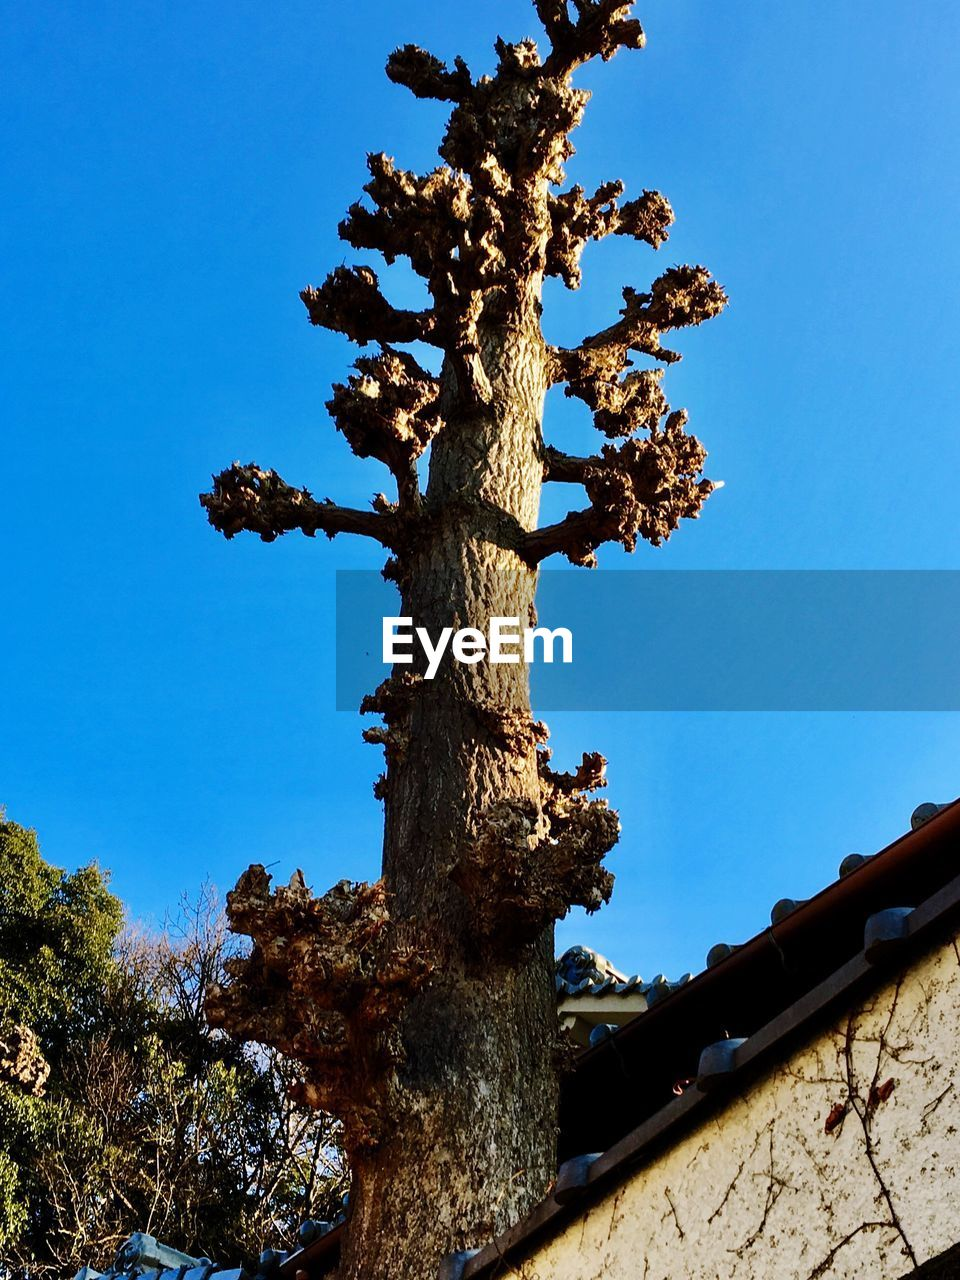 tree, tree trunk, low angle view, day, blue, outdoors, nature, no people, clear sky, growth, branch, beauty in nature, sky